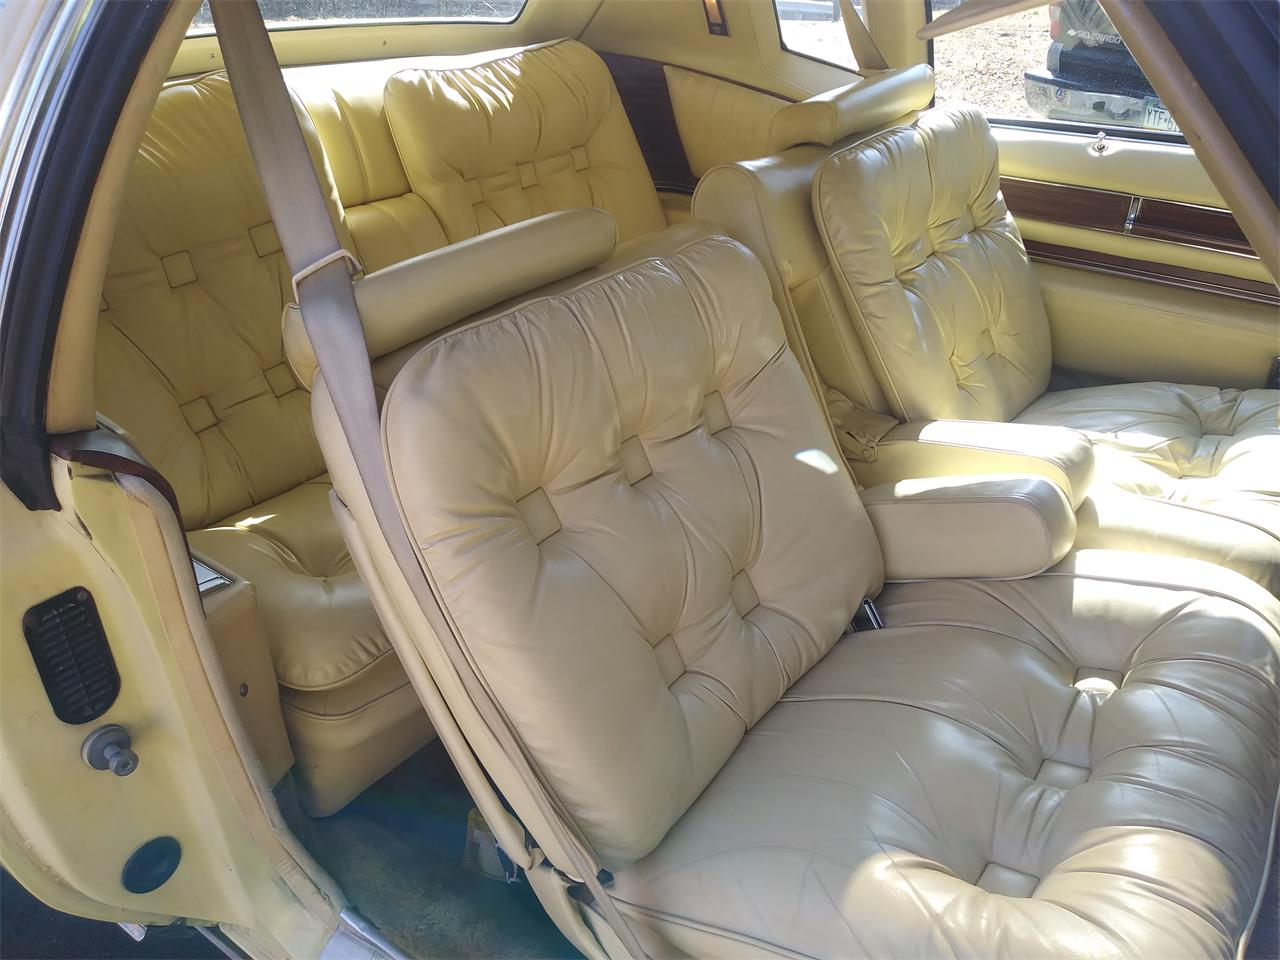 1978 Cadillac Eldorado Biarritz (CC-1409984) for sale in Bangor, Pennsylvania